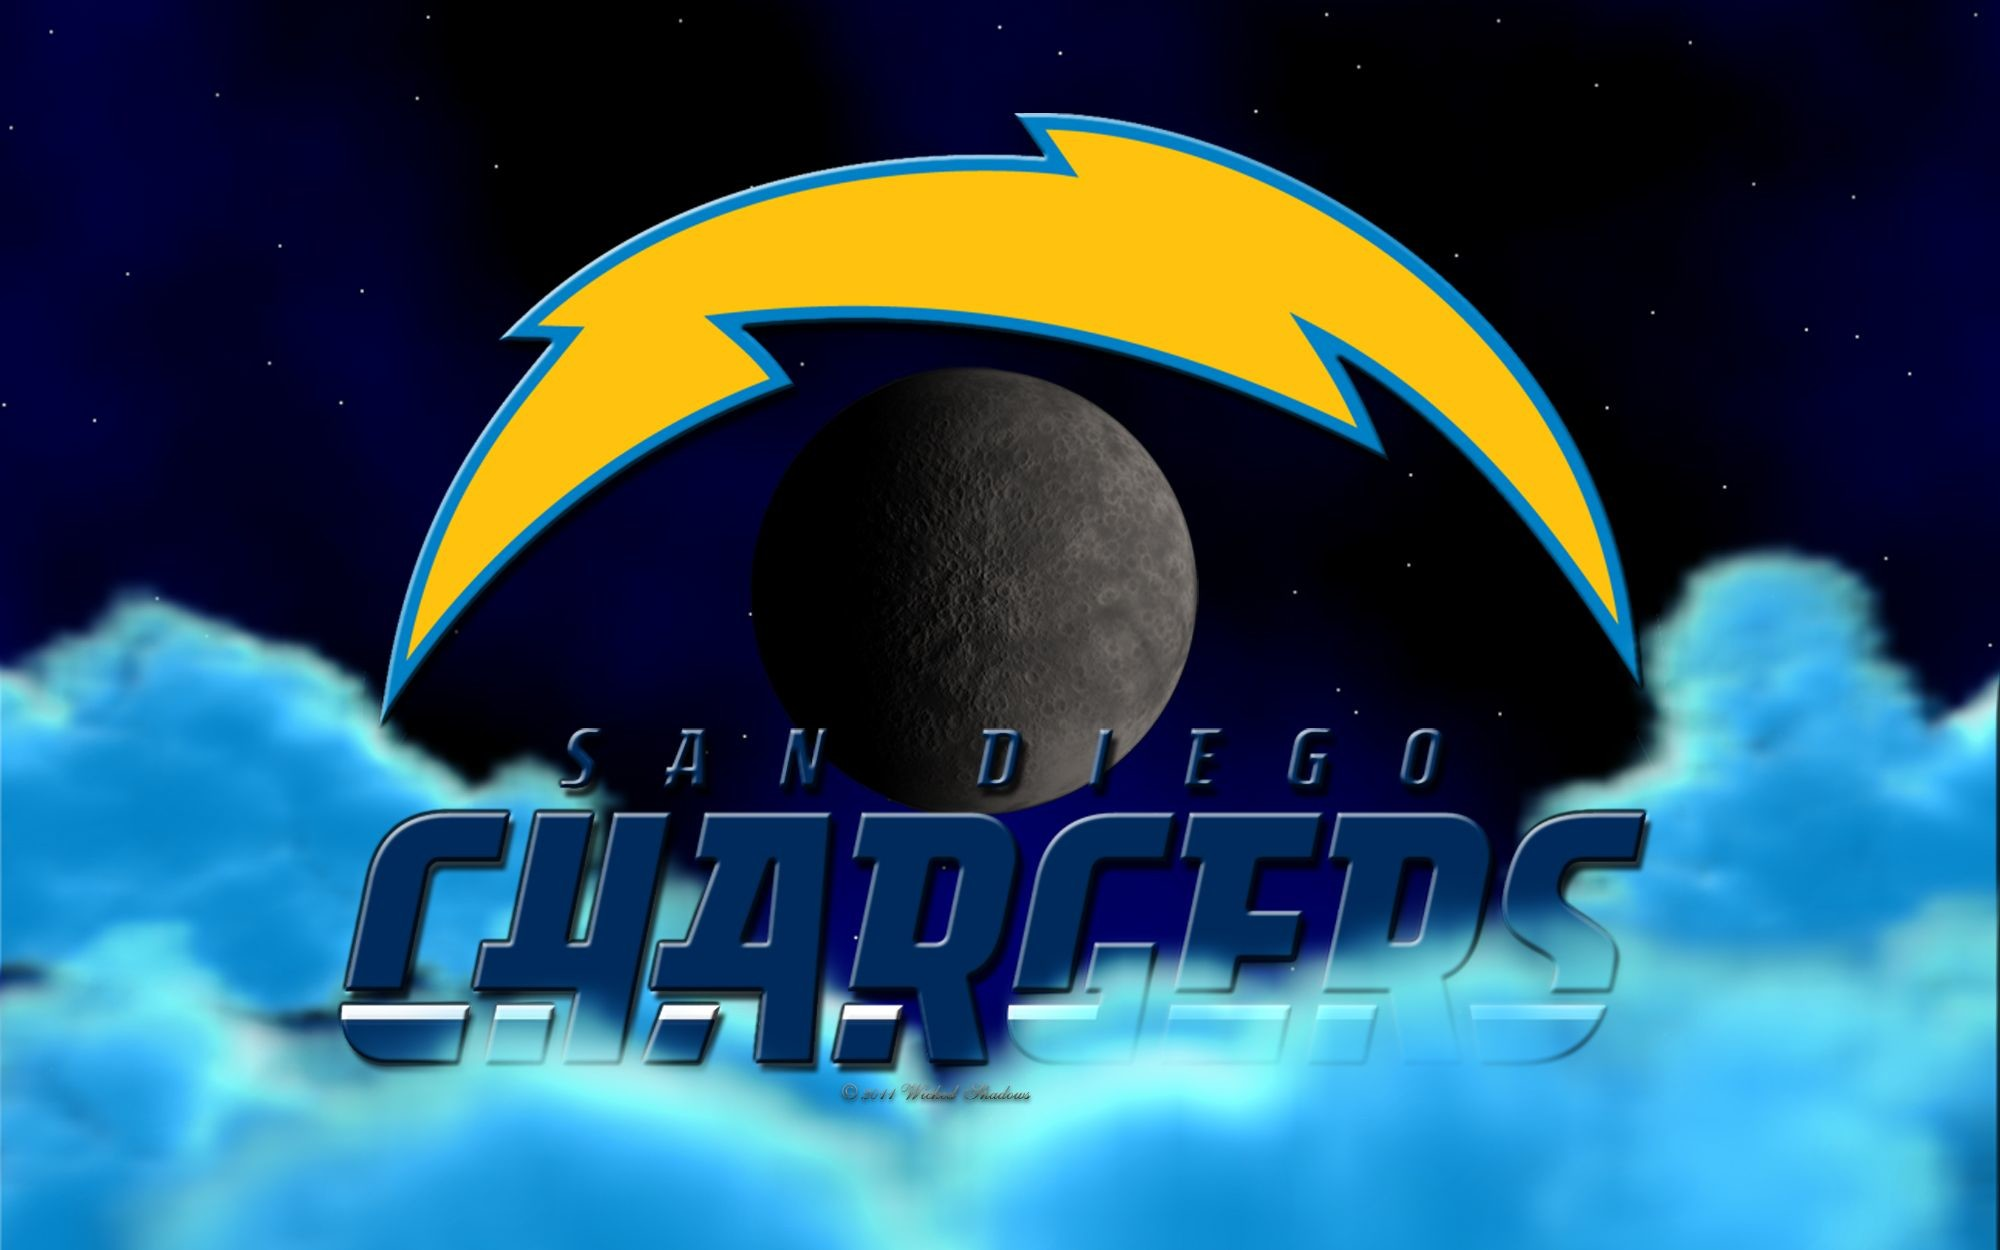 2000x1250 ... 16x10 Widescreen | 1920x1408 Tablet San Diego Chargers Above The Clouds  Wallpaper